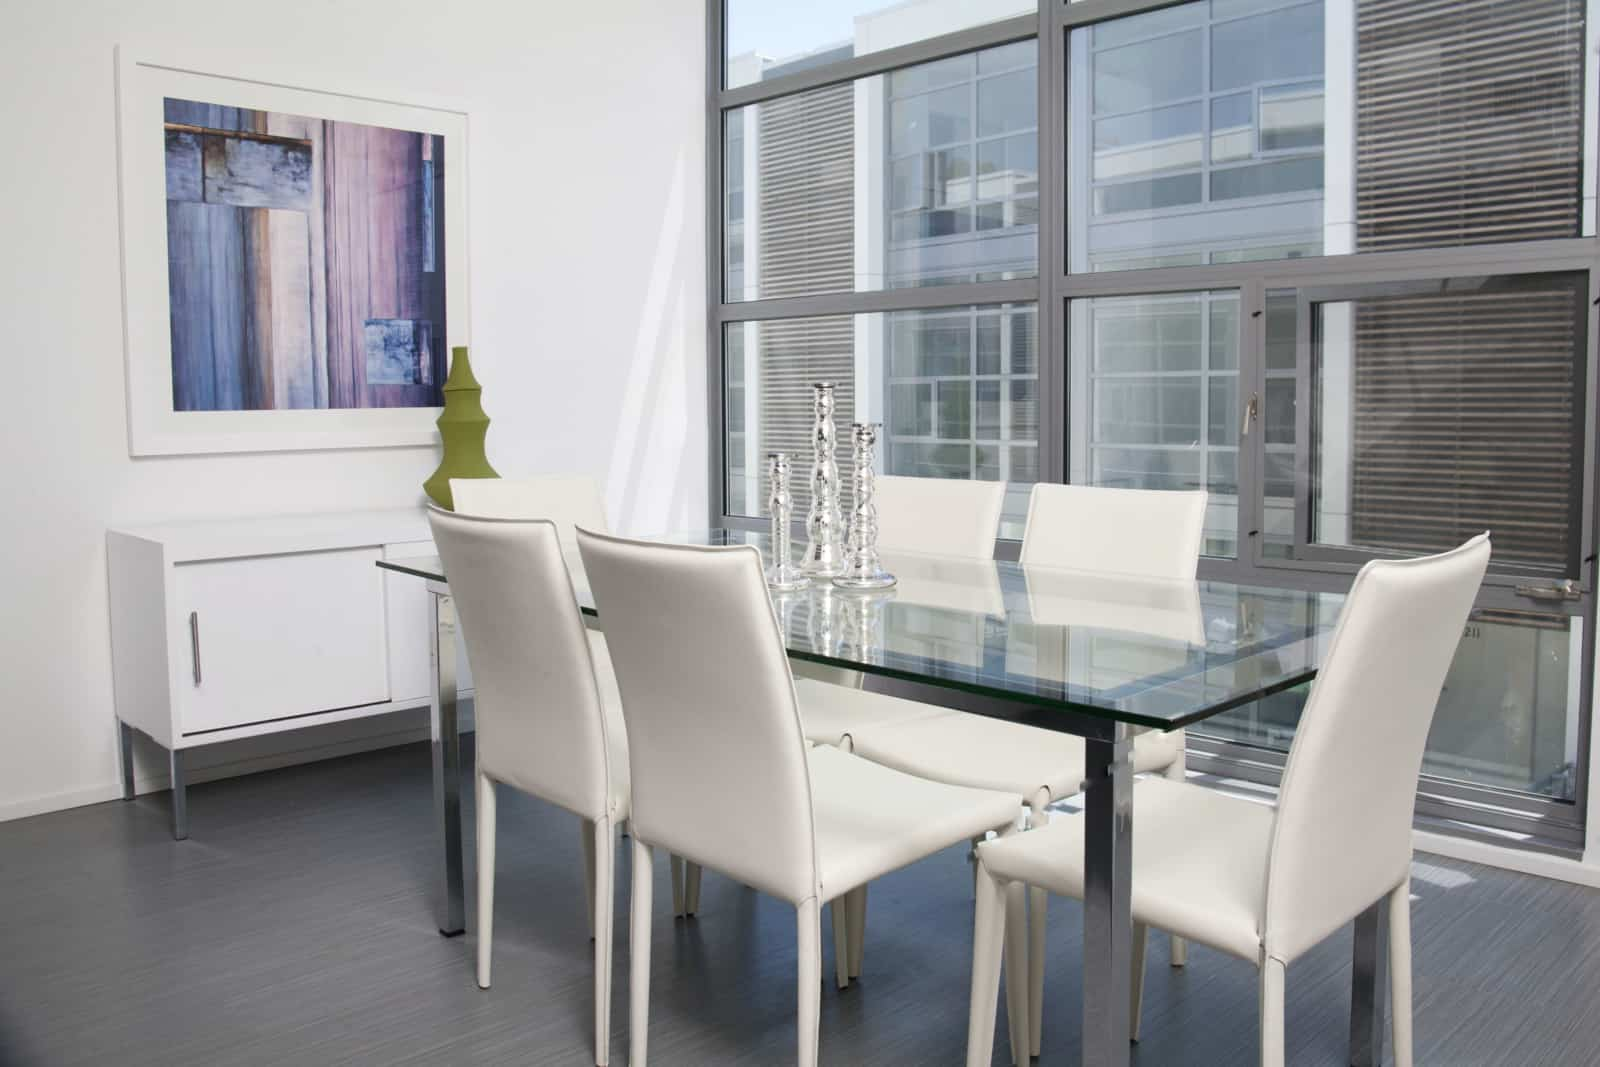 Interior of dining area with glass and steel table and white leather chairs.